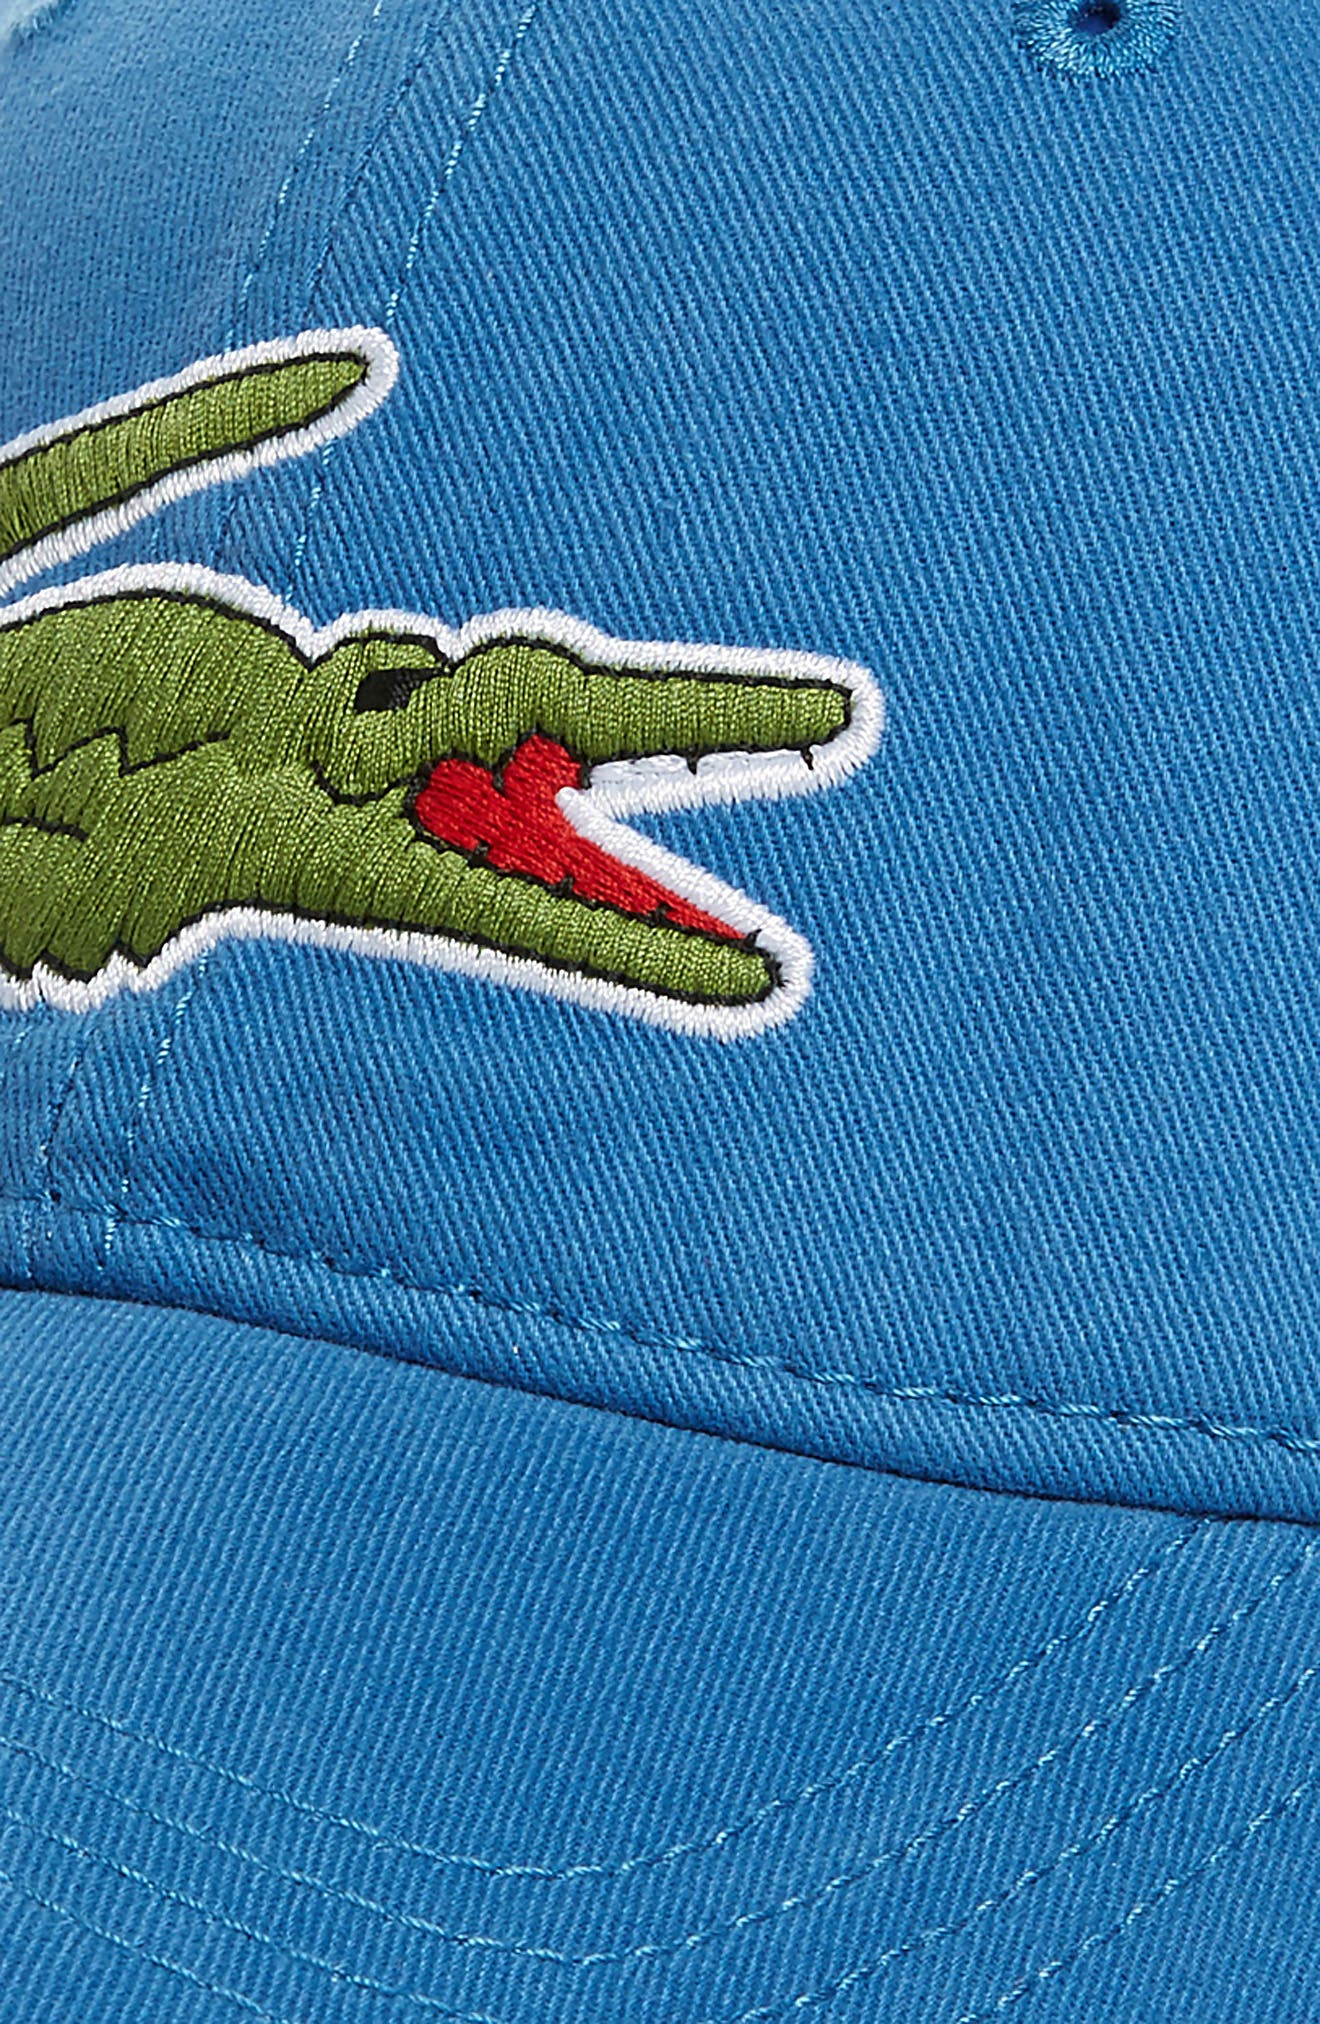 'Big Croc' Logo Embroidered Cap,                             Alternate thumbnail 3, color,                             Medway